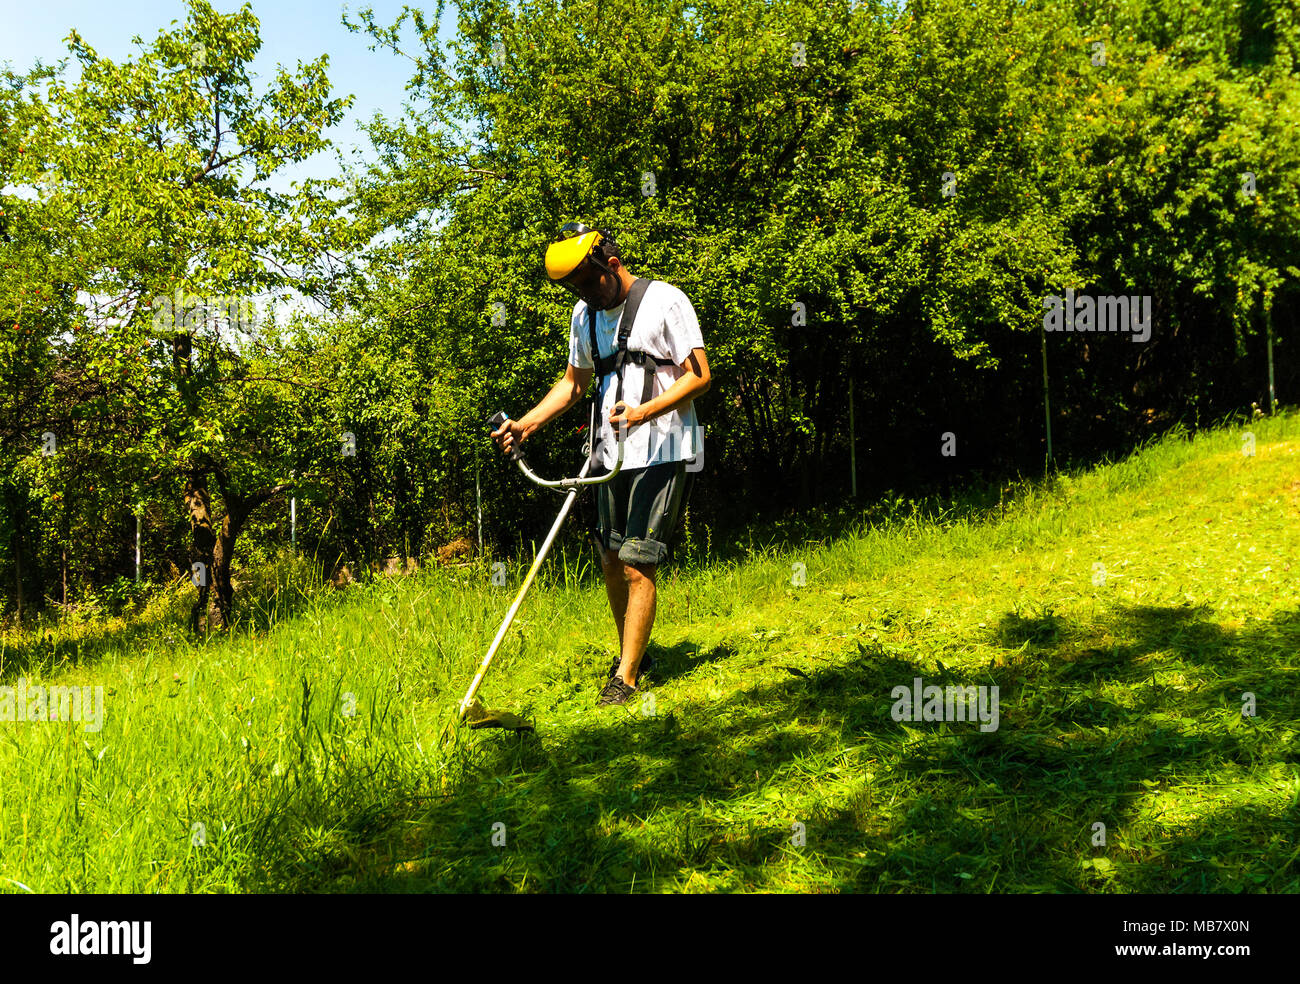 Close up of man mowing green wild grass field using brush cutter mower or power tool string lawn trimmer. Seasonal garden cleaning and mowing concept. - Stock Image